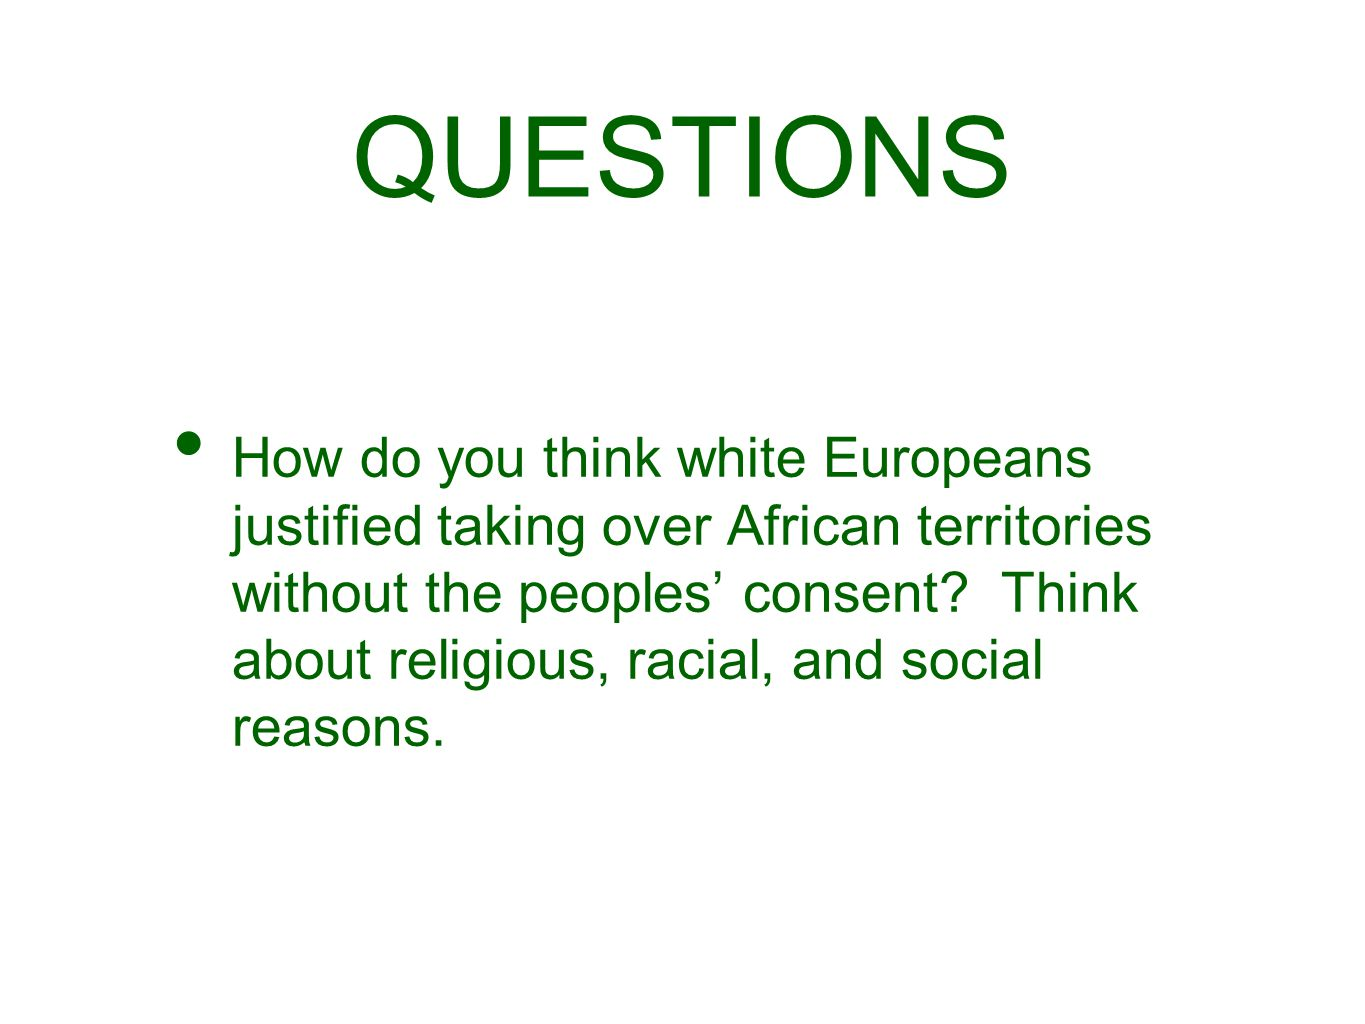 QUESTIONS How do you think white Europeans justified taking over African territories without the peoples' consent? Think about religious, racial, and